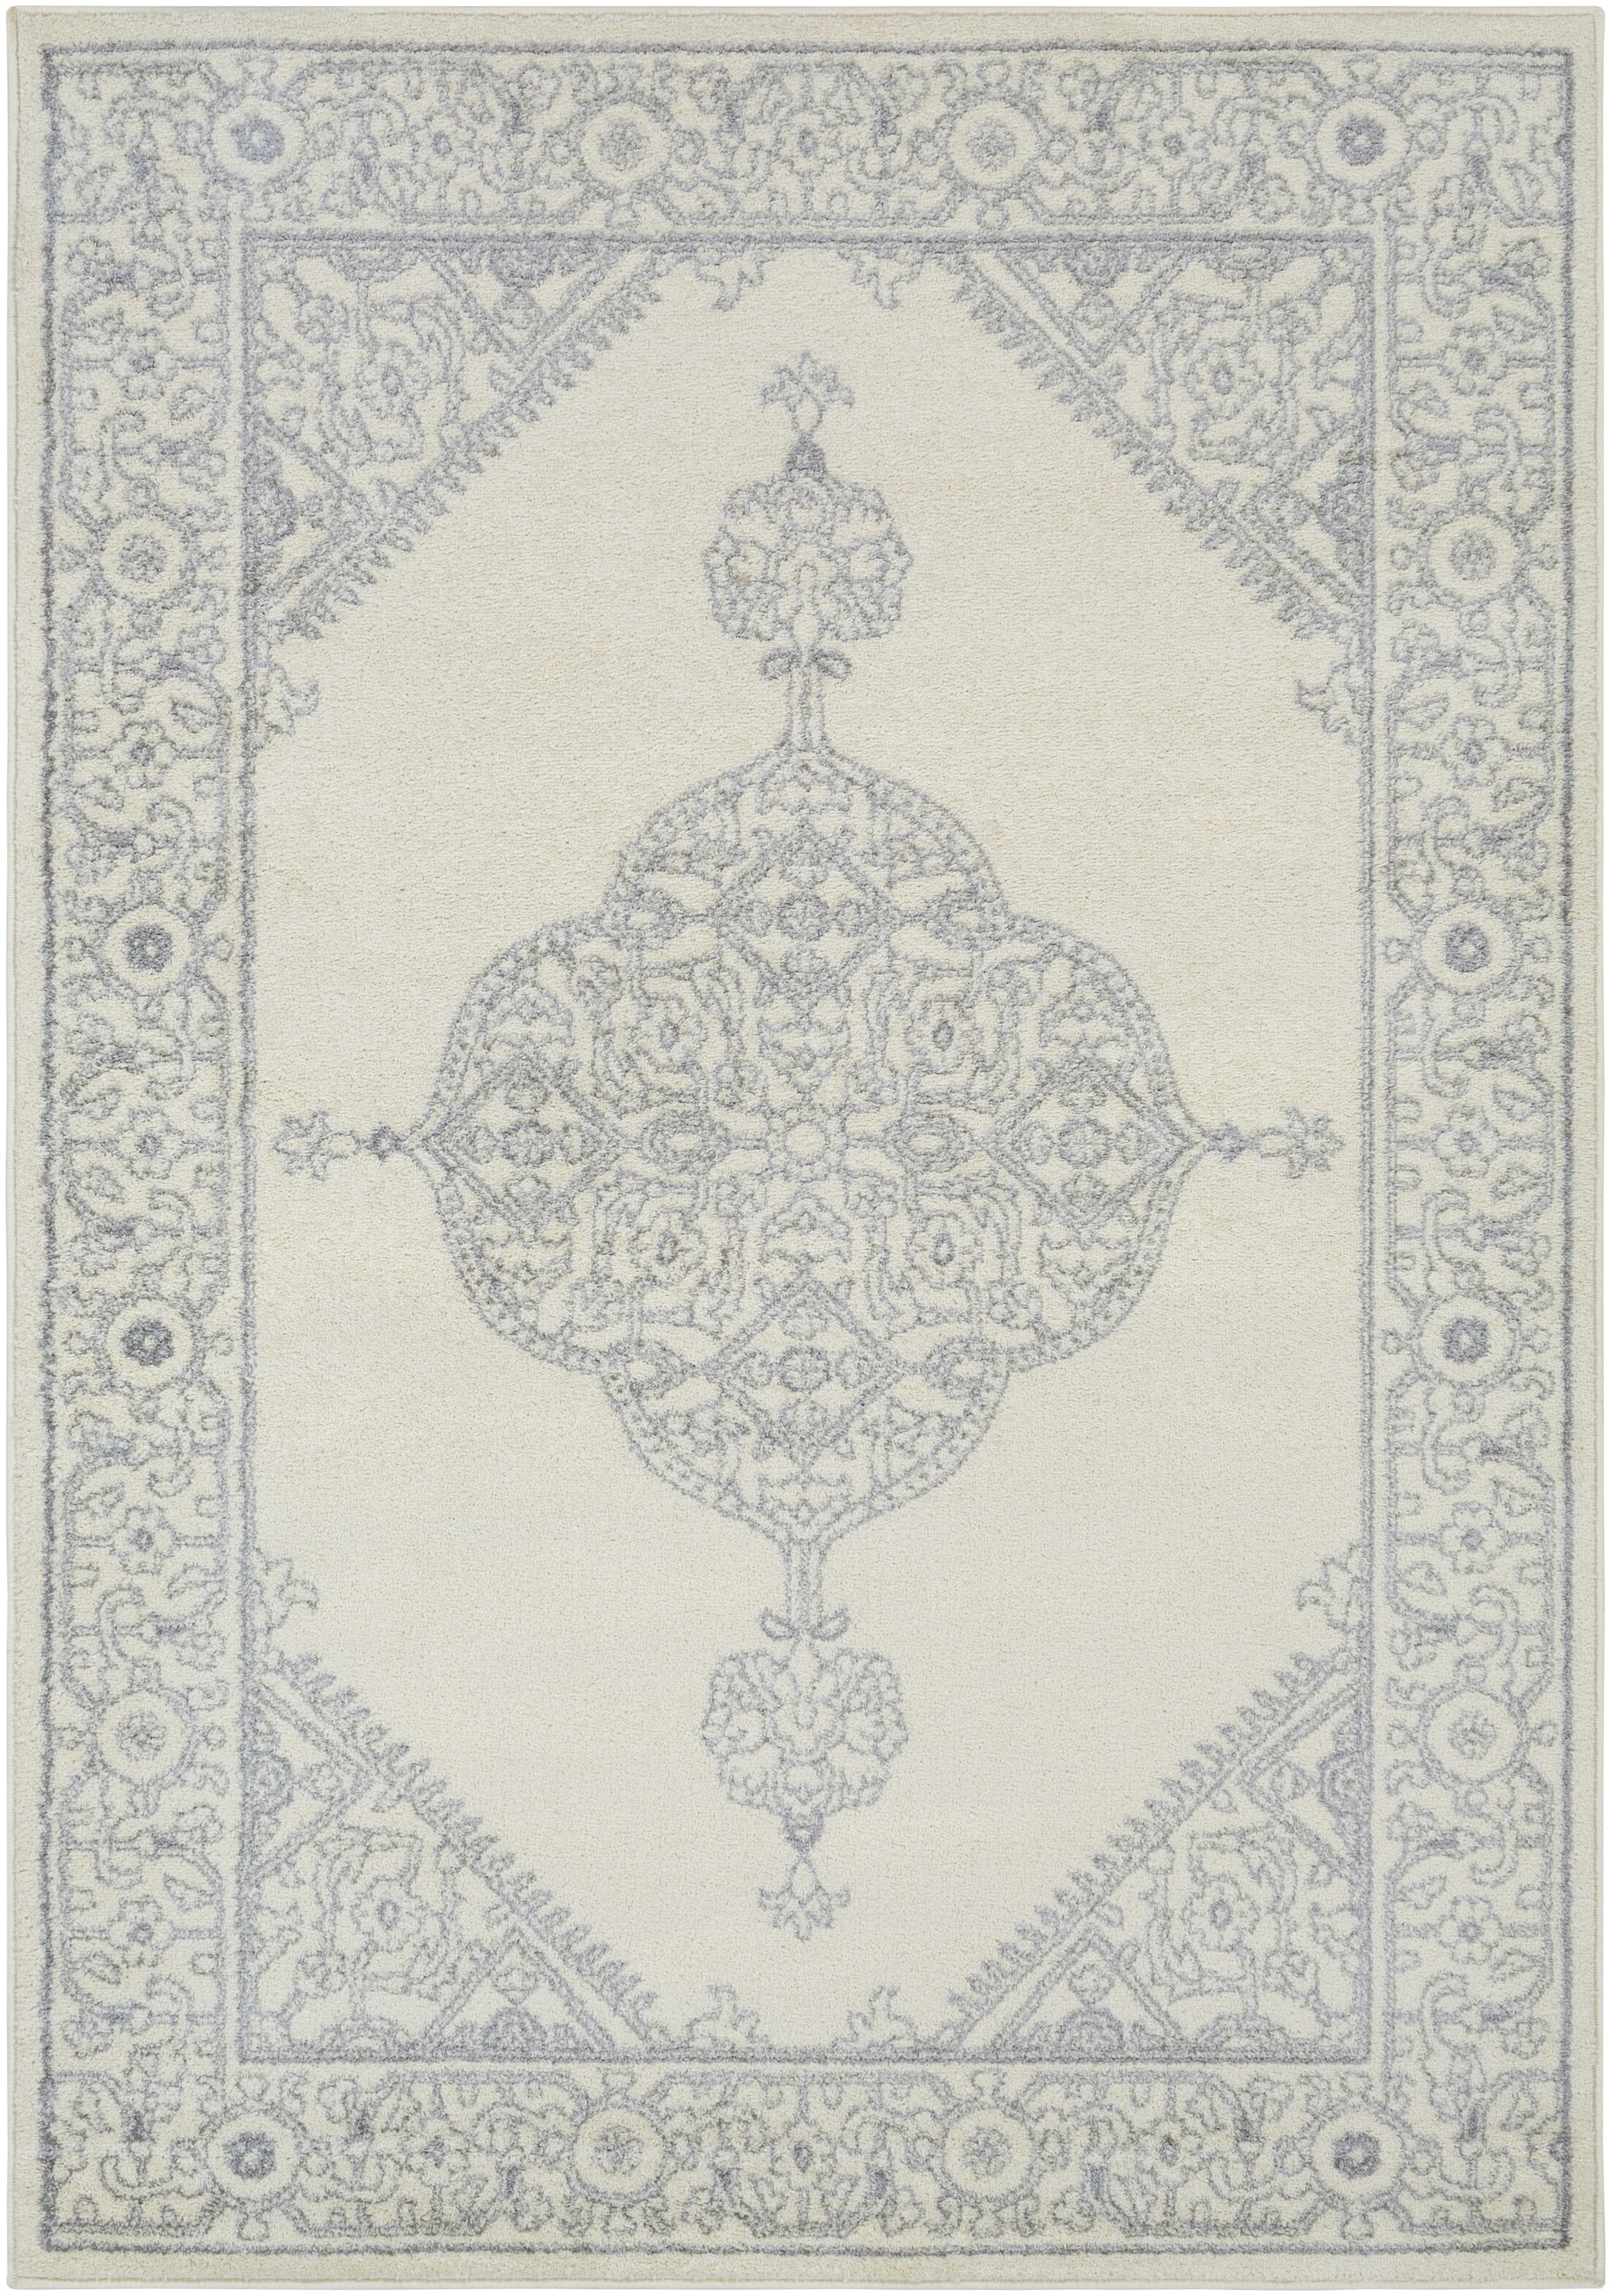 Corinna Medium Gray/Cream Area Rug Rug Size: Rectangle 8' x 10'